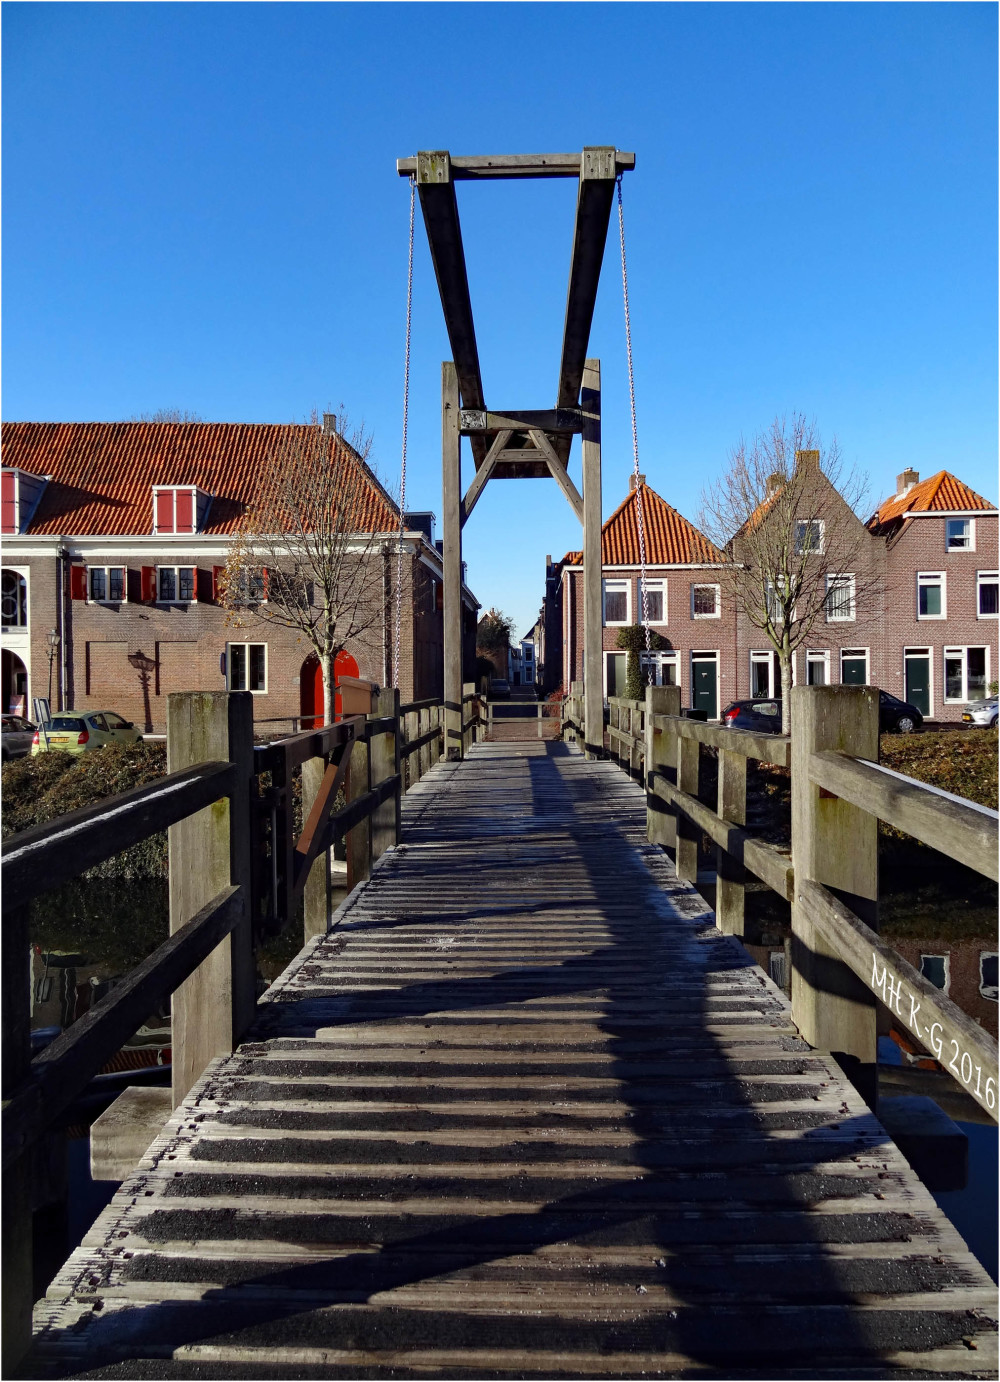 A drawbridge in Brielle